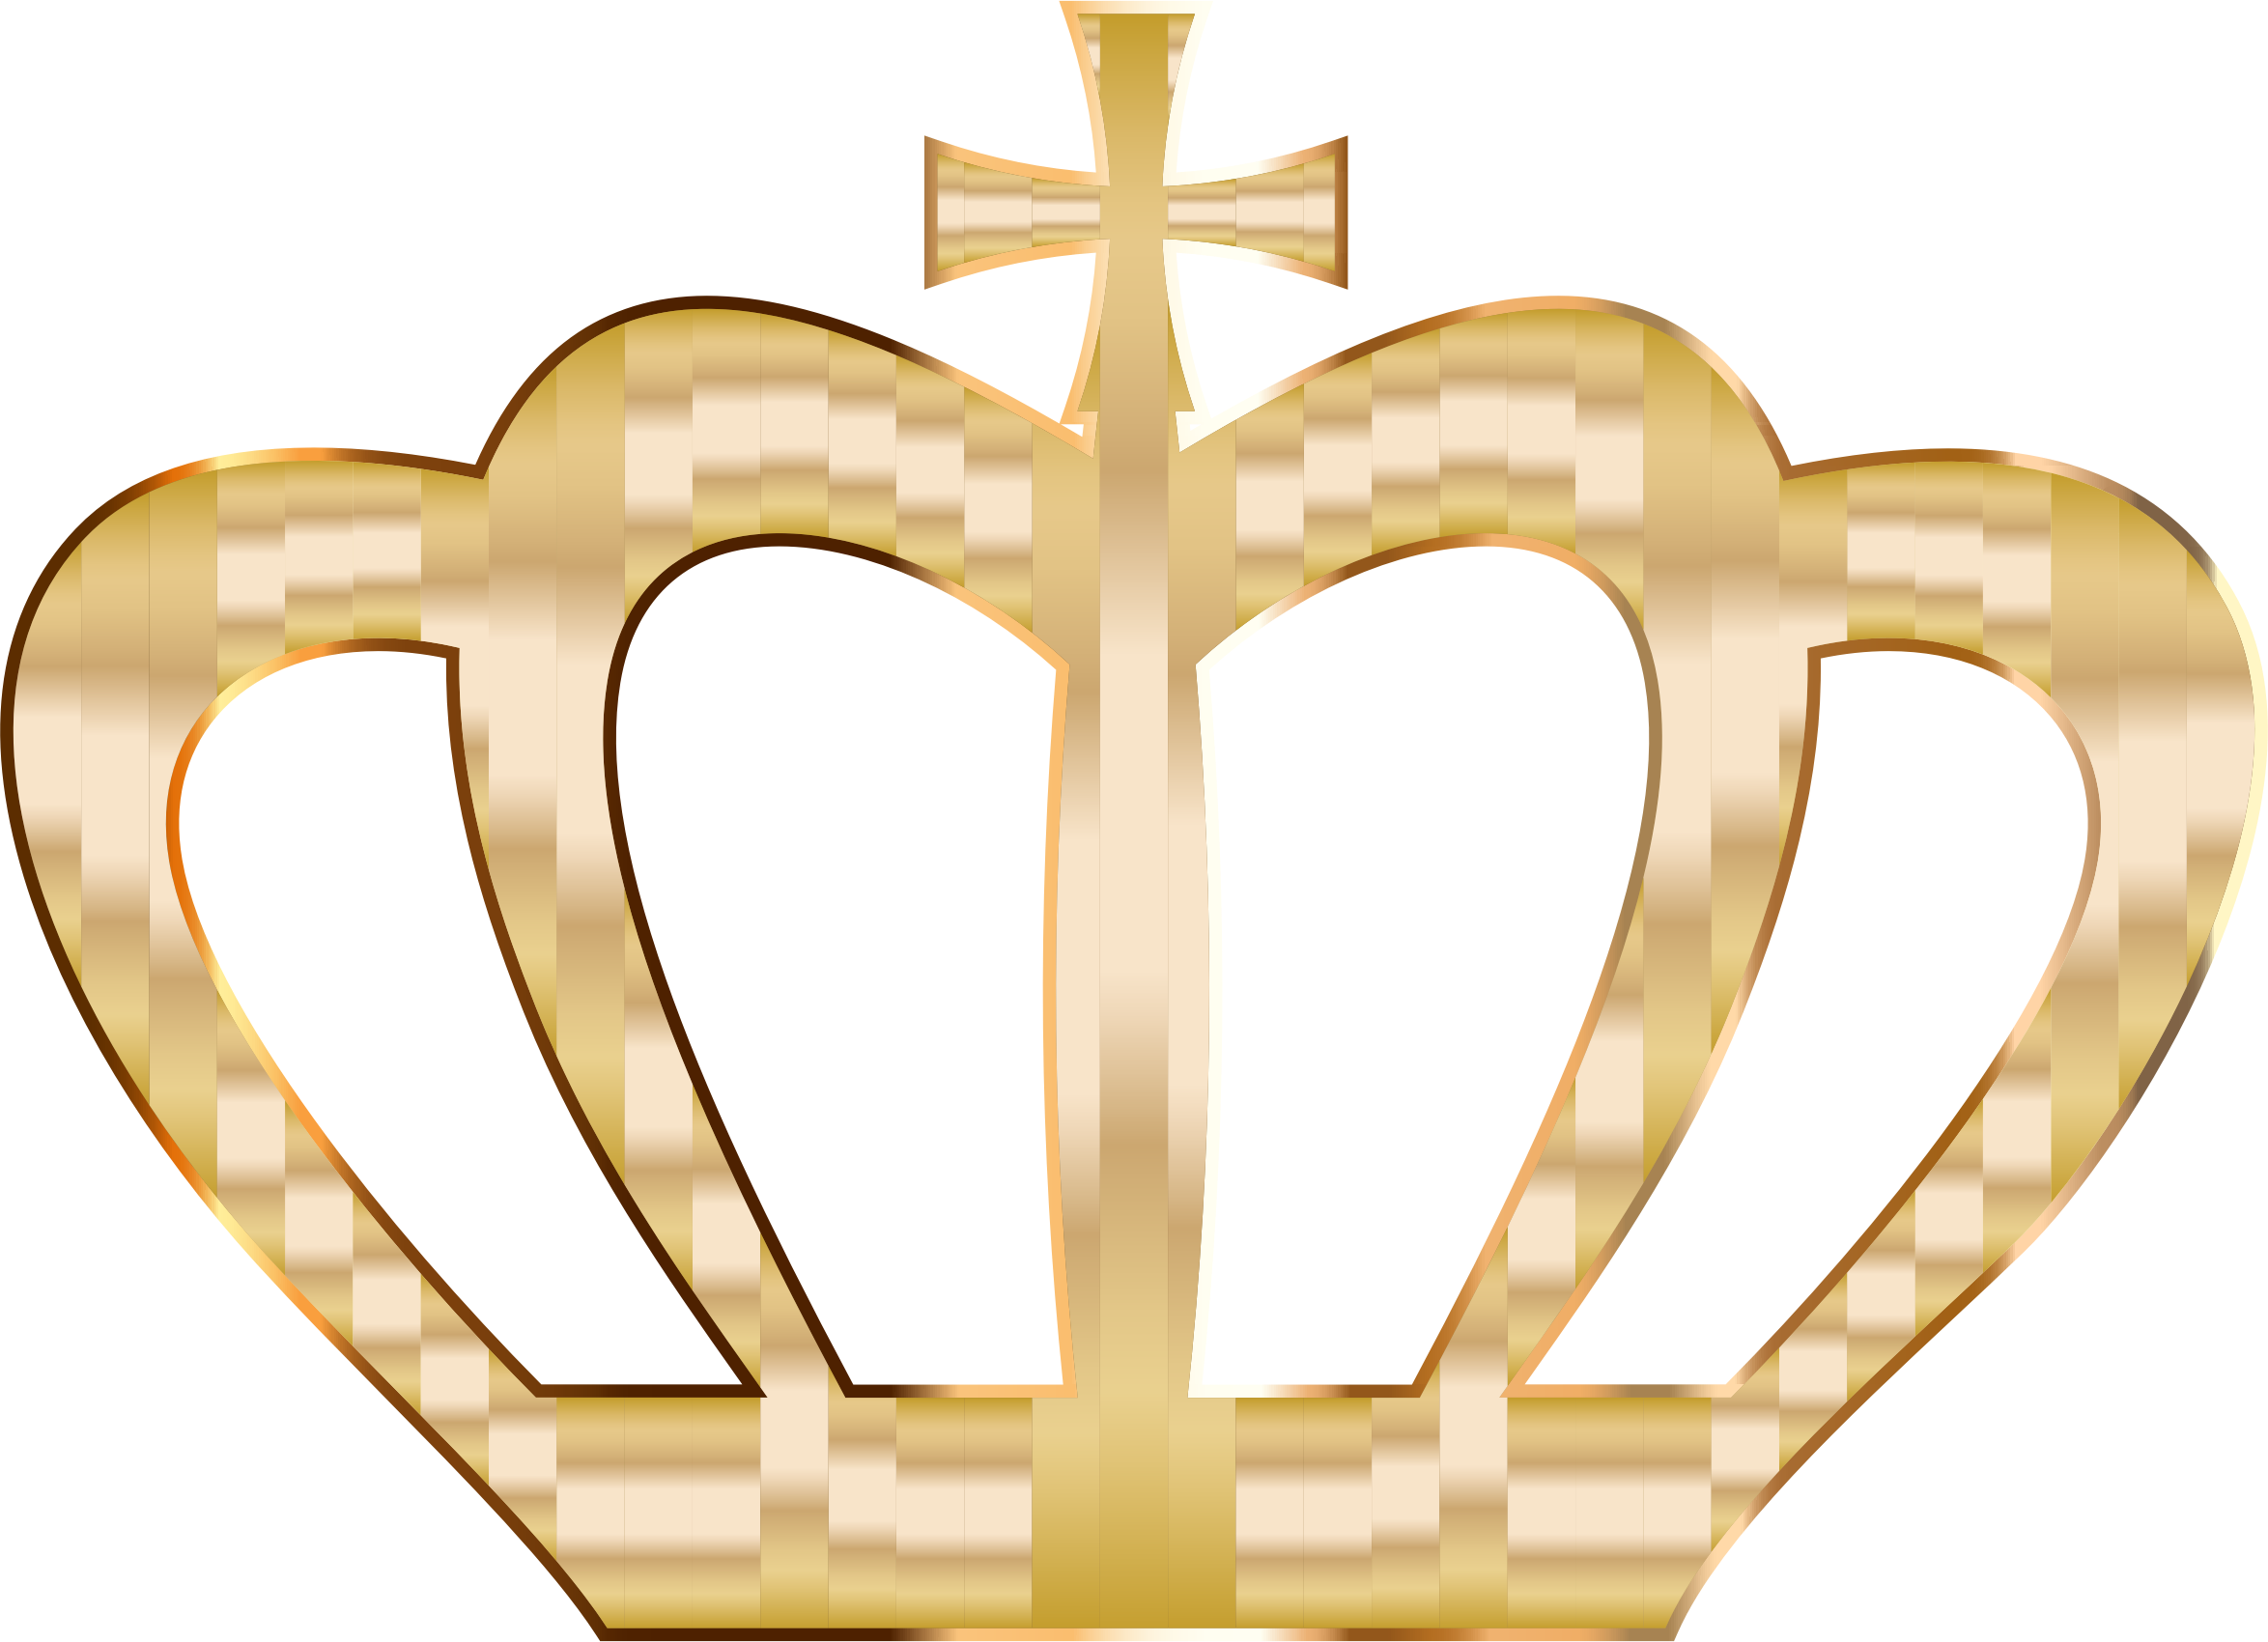 Clipart - Gold Crown Silhouette 2 No Background clip royalty free library